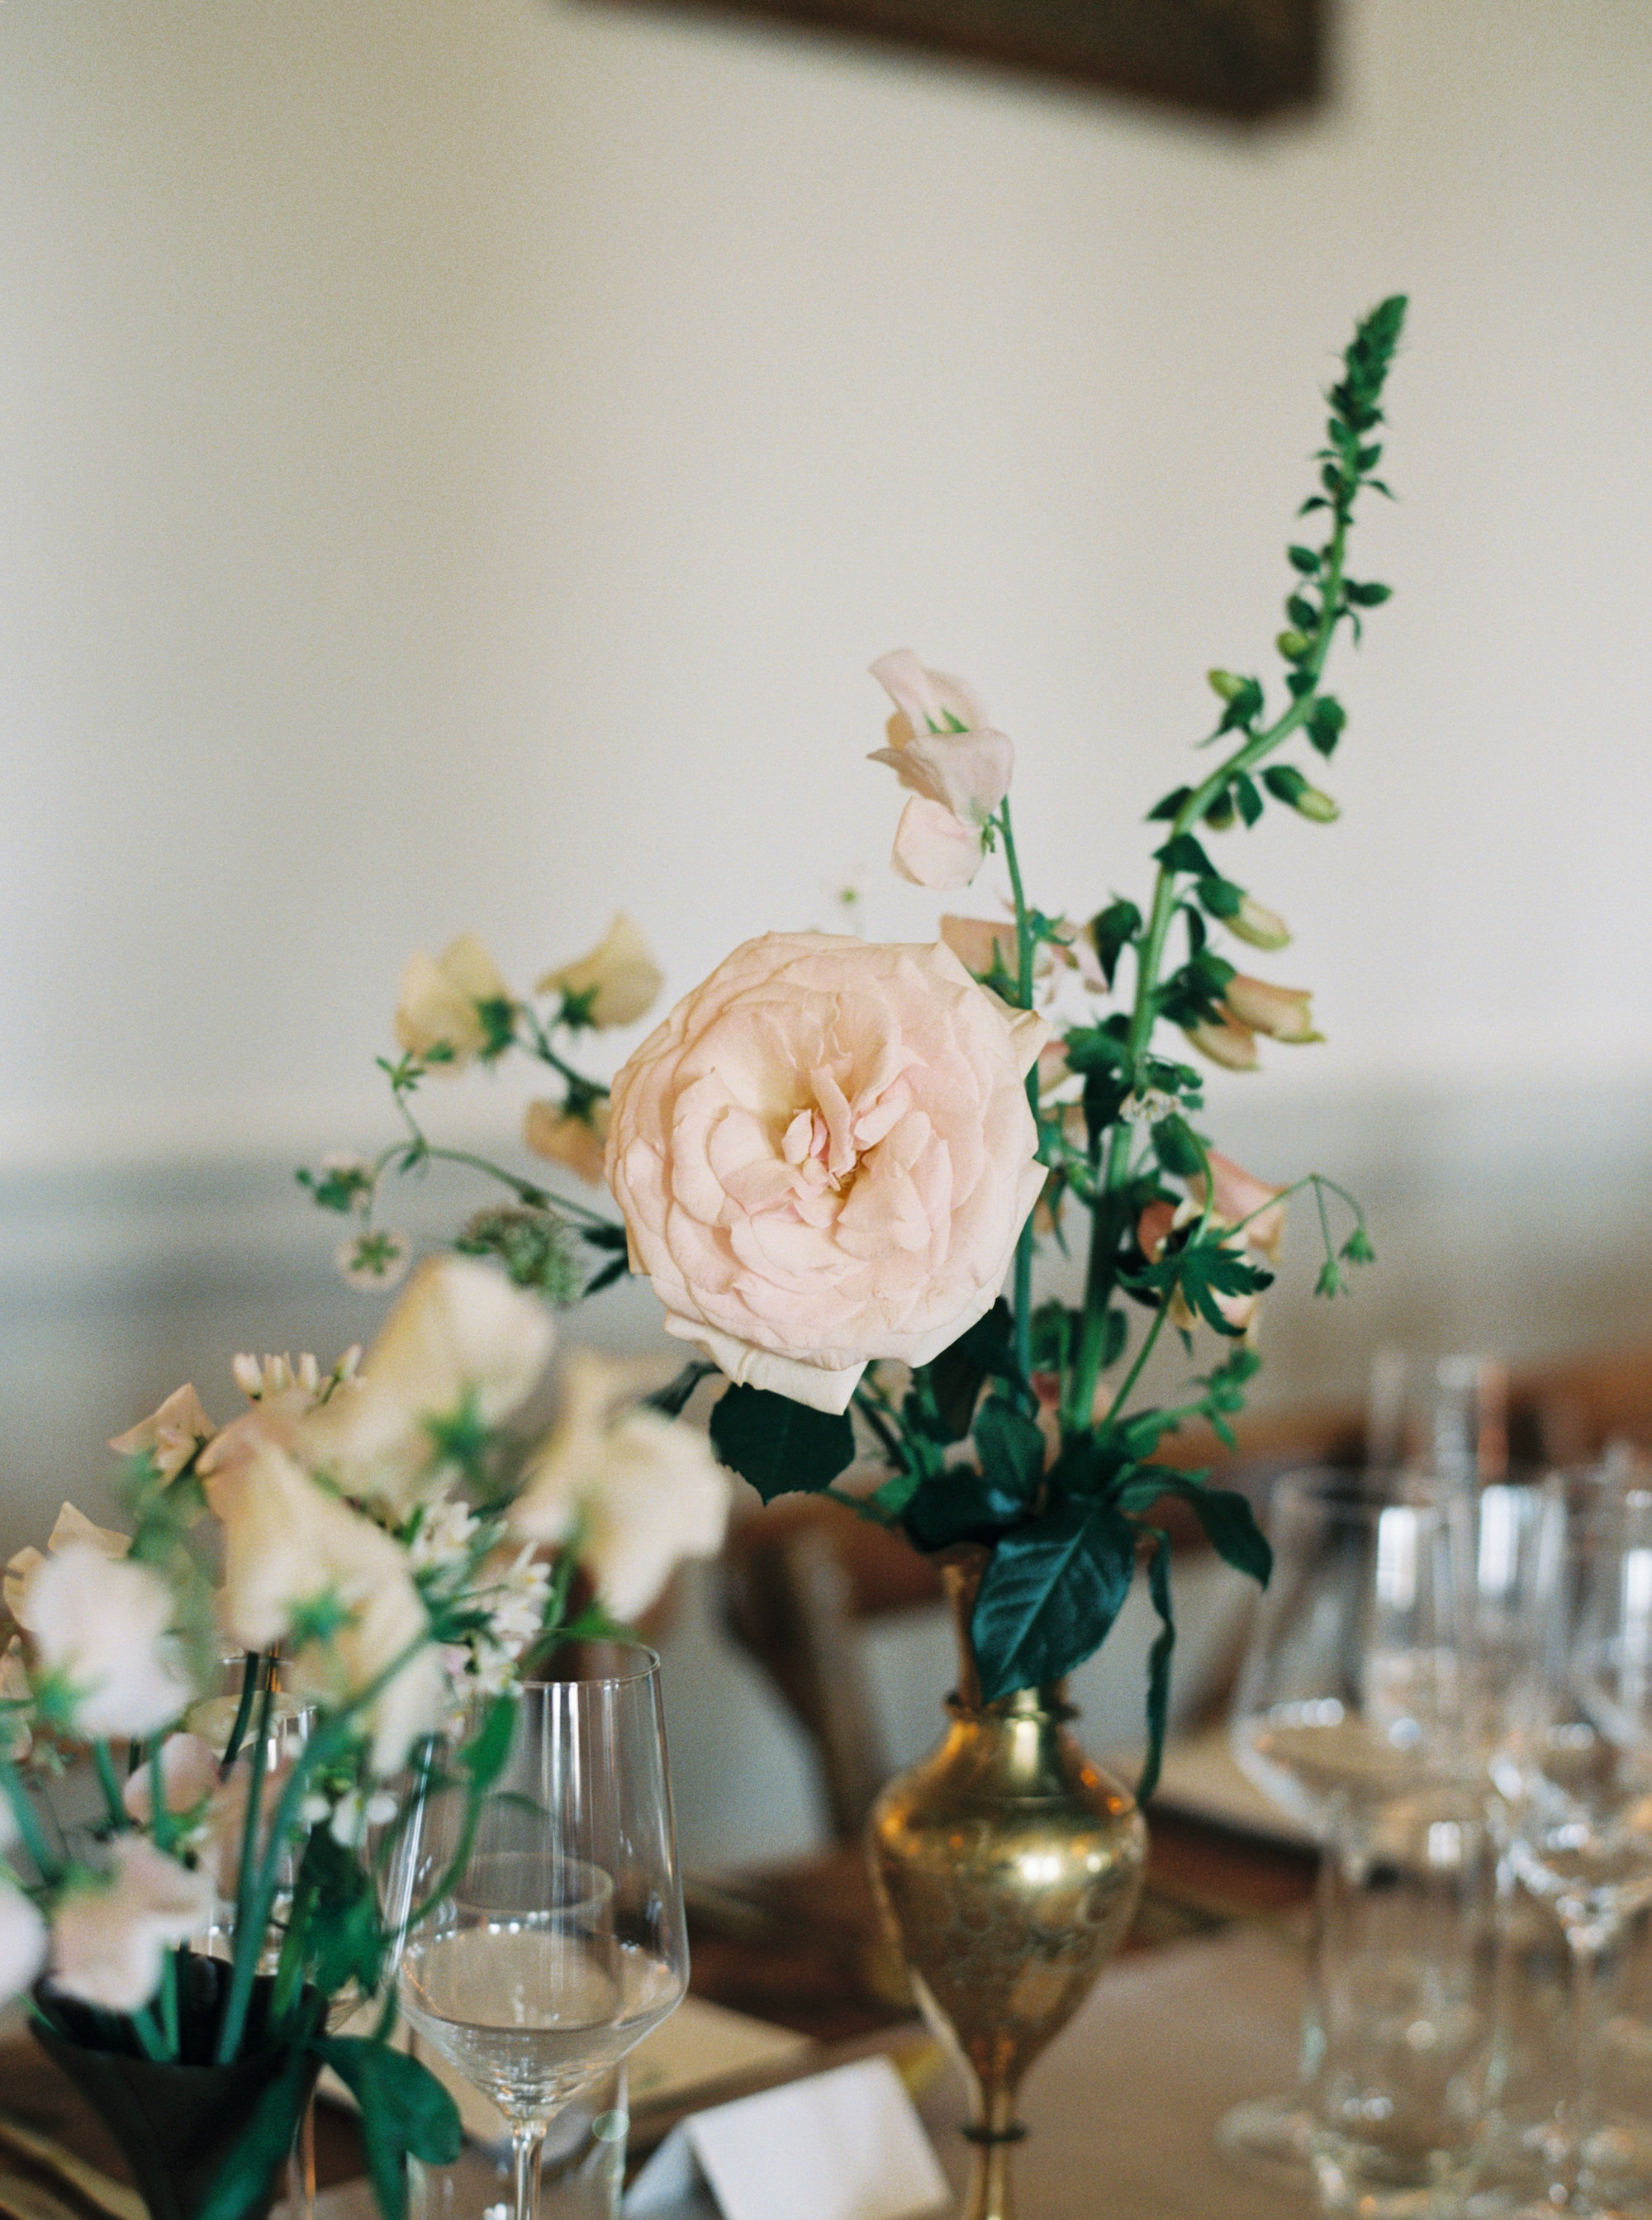 Luxury Wedding Planner UK | Jennifer & Timothy's English Country Manor Wedding | Soft Pink Pale Blue White and Silver Toned Green Neutral Tones American Bride North Cadbury Court | Nicole Colwell Photography 1229.jpg